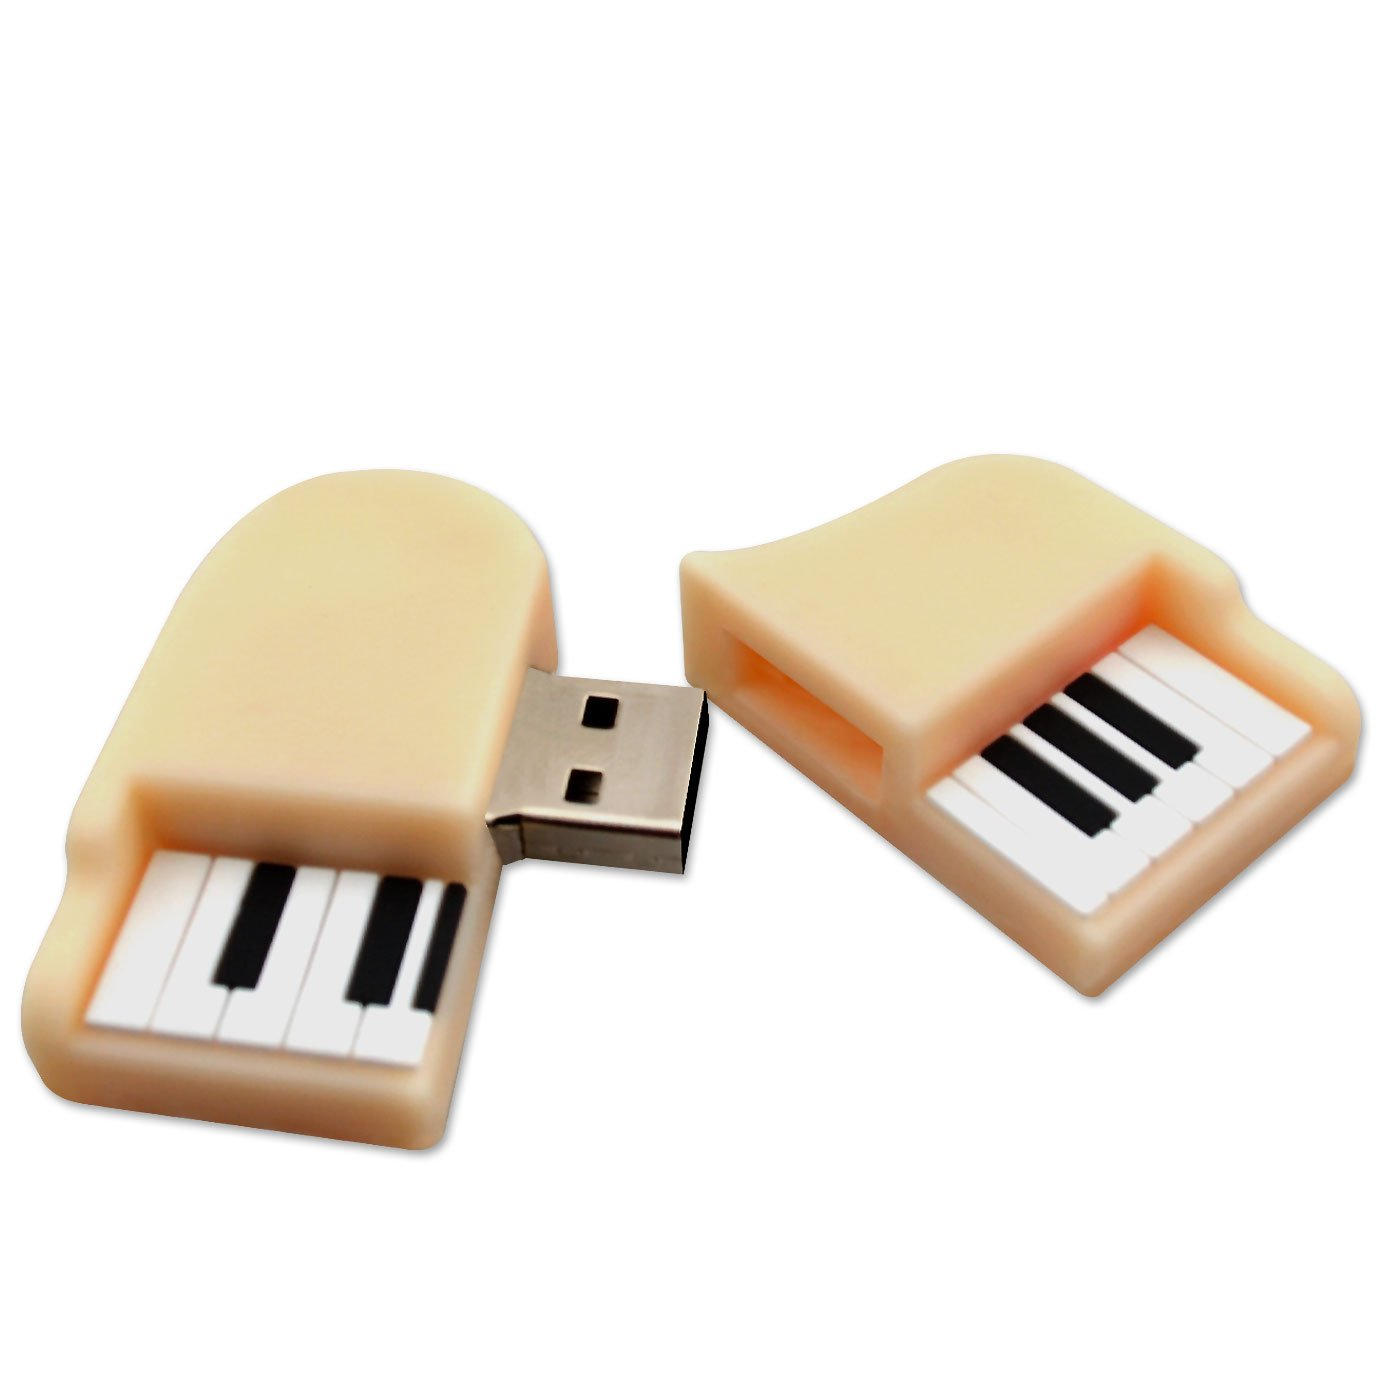 cl usb 8go instrument piano 3d blanc usb 2 0 accessories studio live buy online. Black Bedroom Furniture Sets. Home Design Ideas